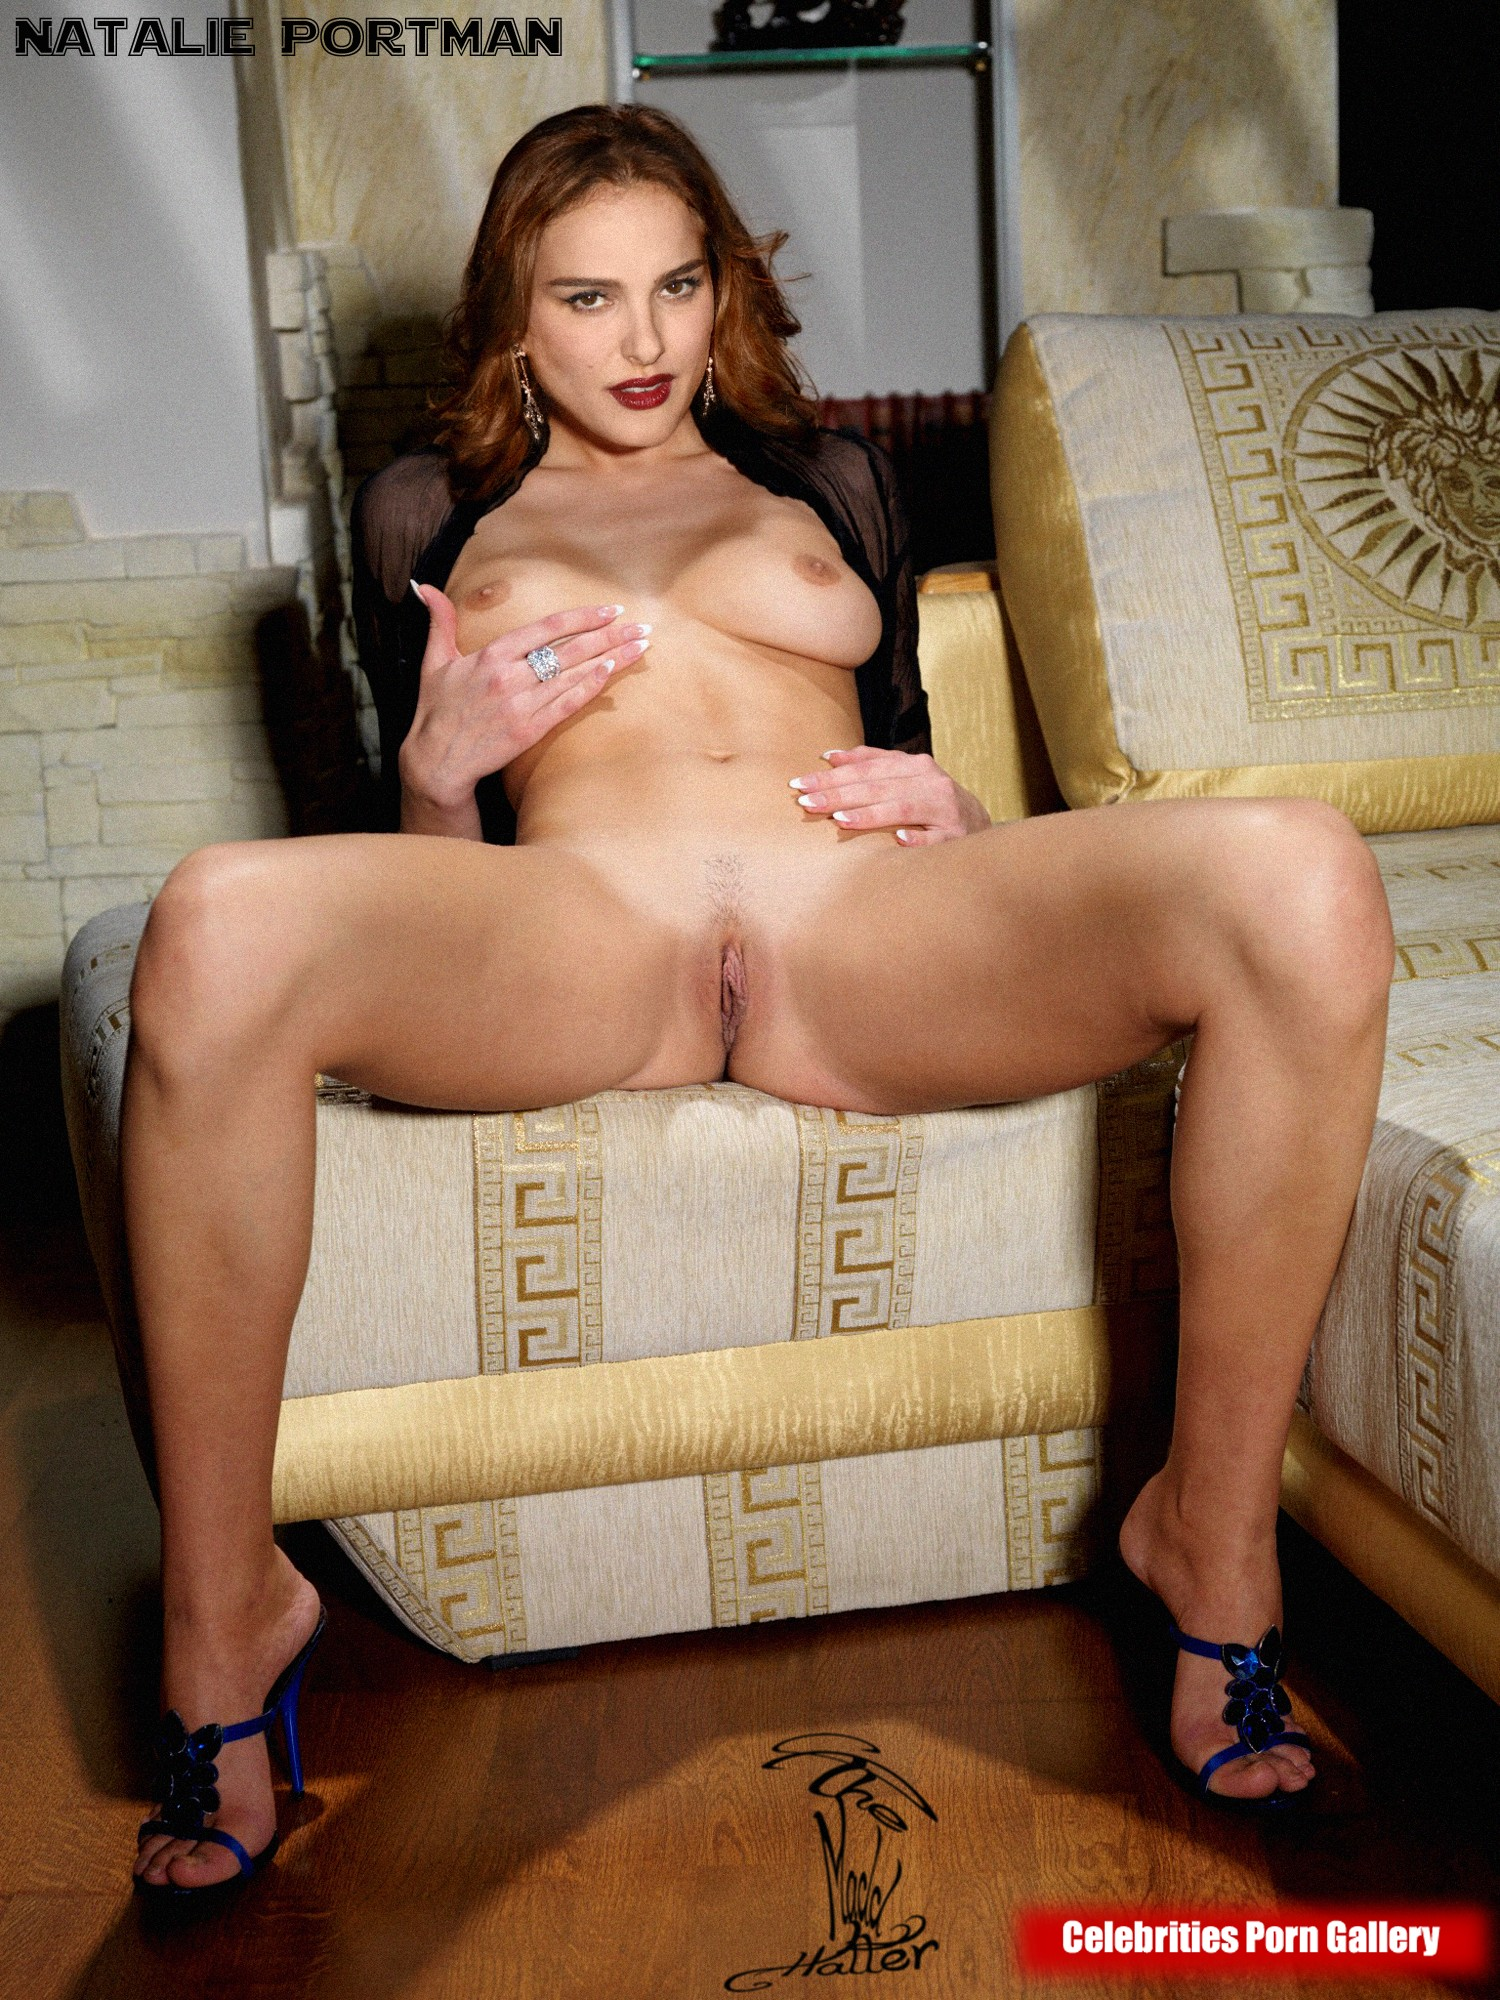 jill wagner fake nude pics galleries